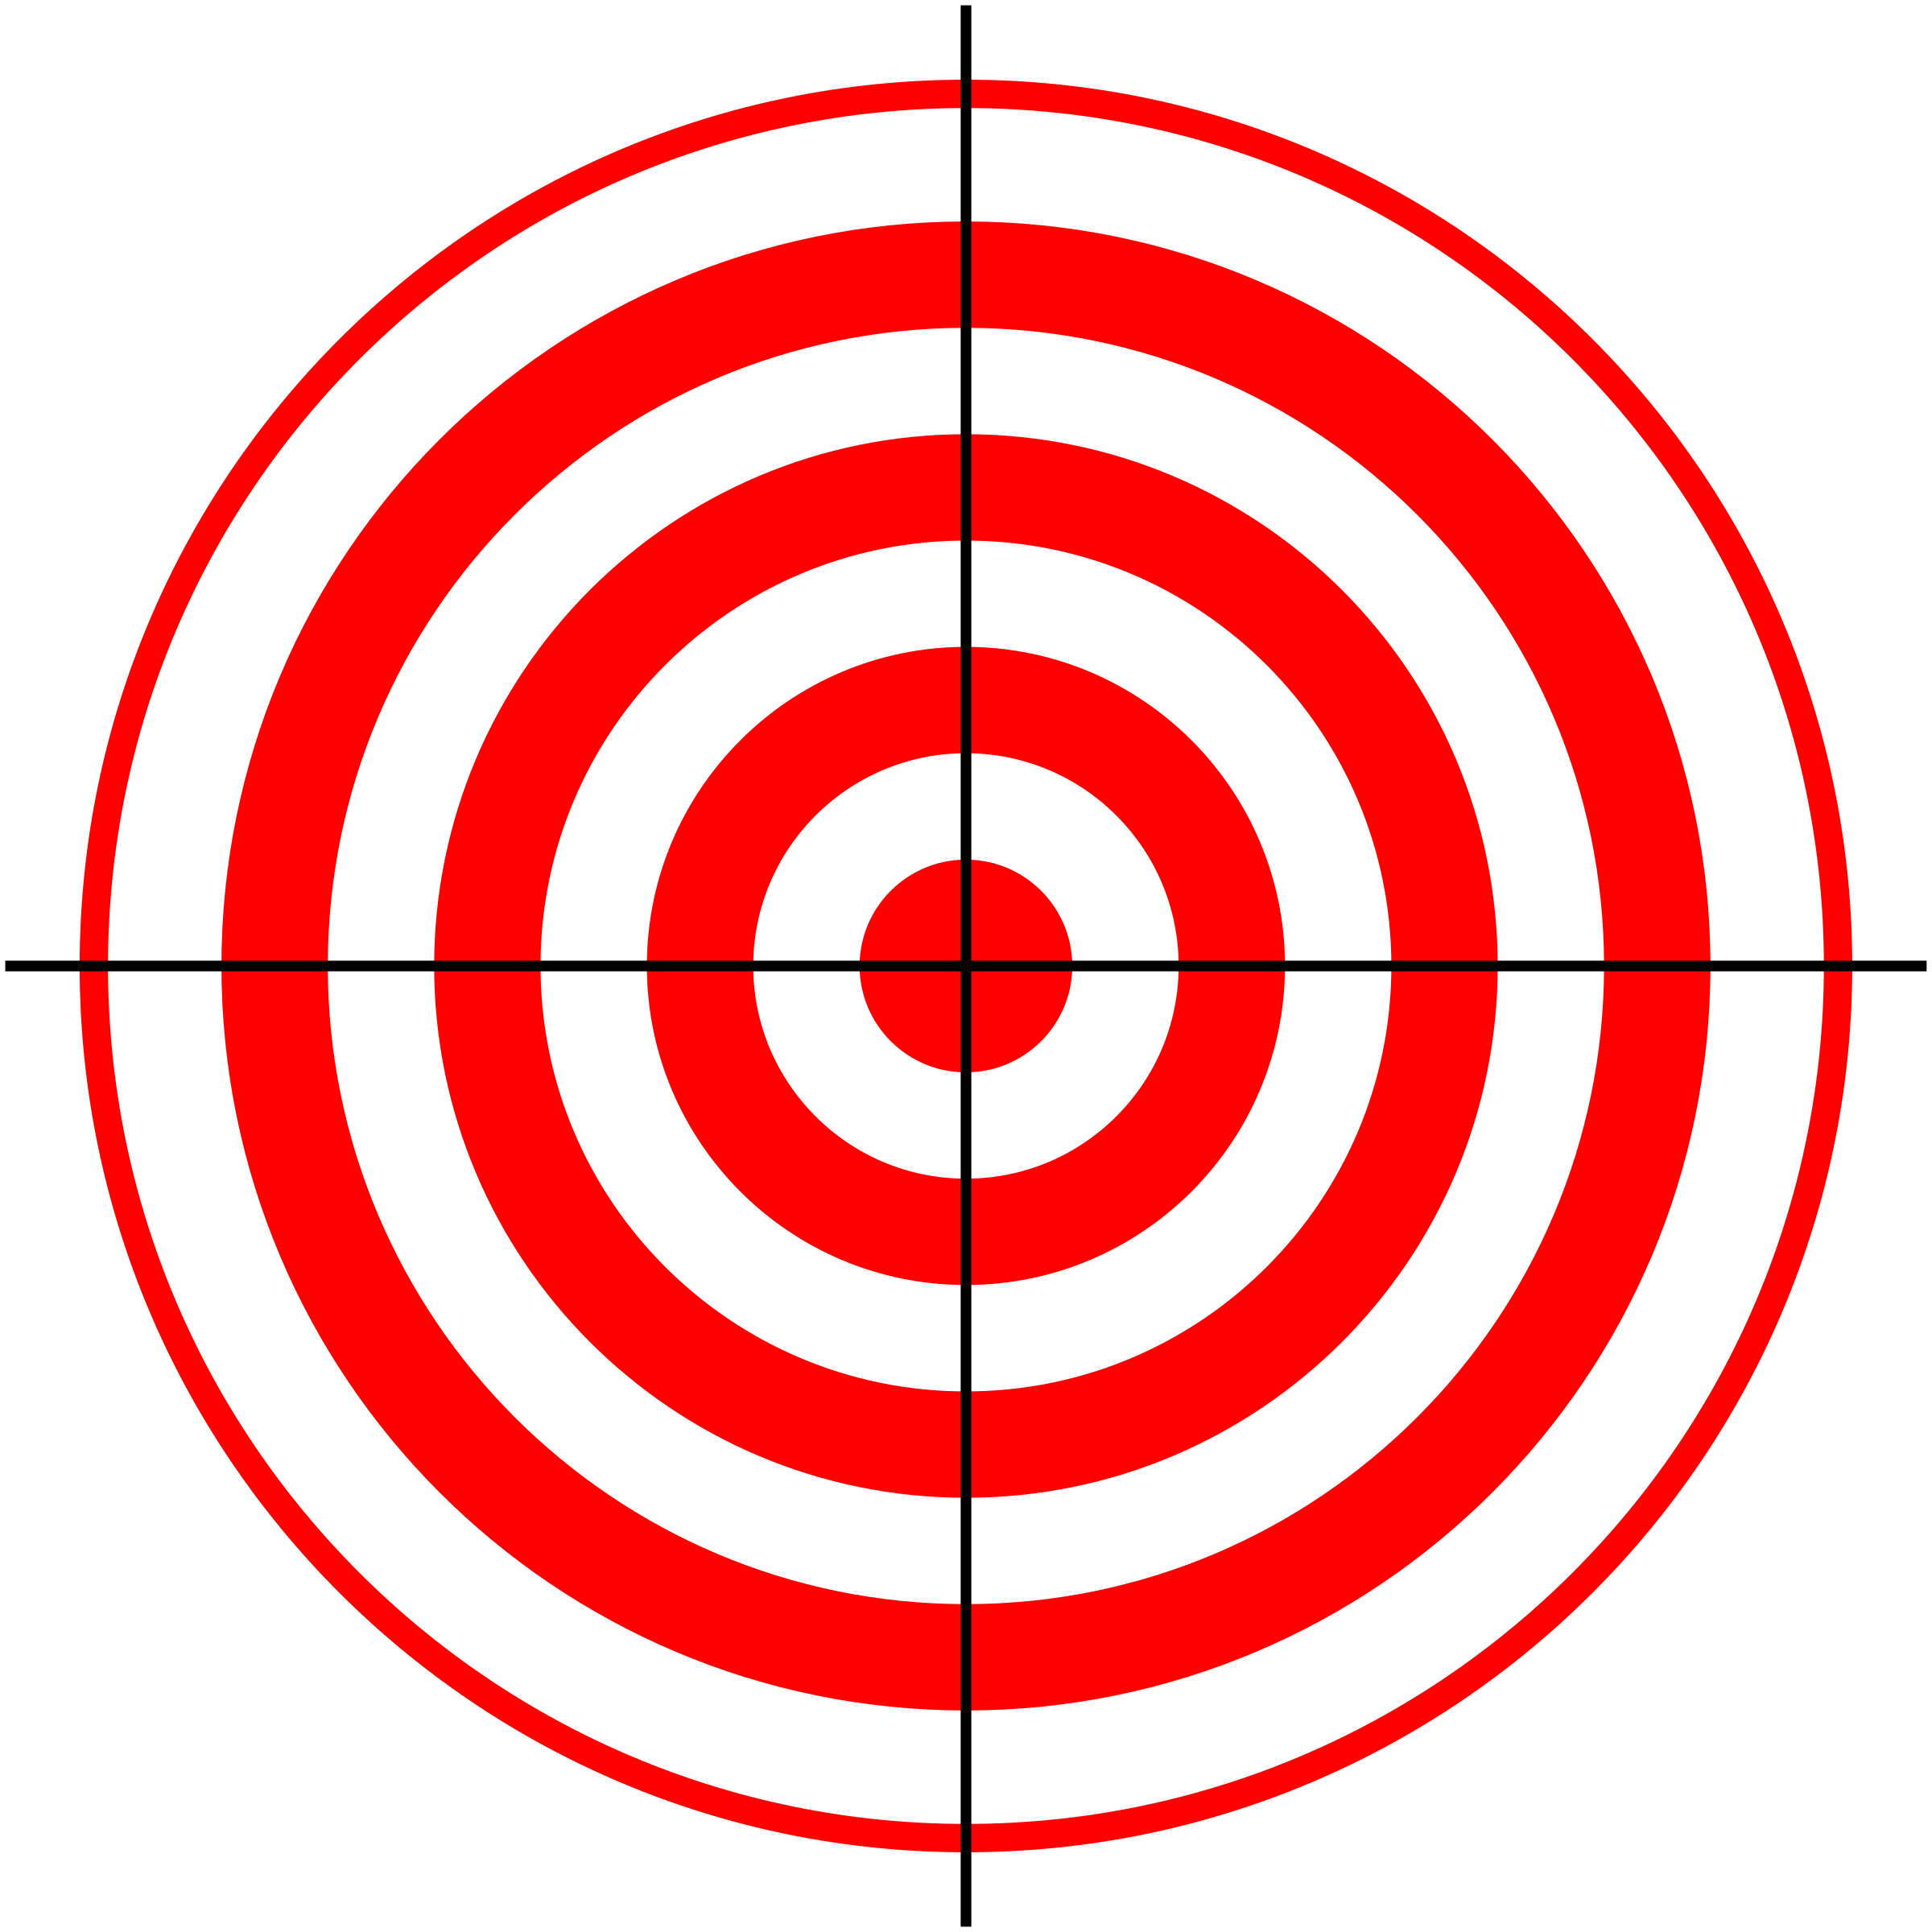 Motivation clipart goal target. Free png bullseye transparent